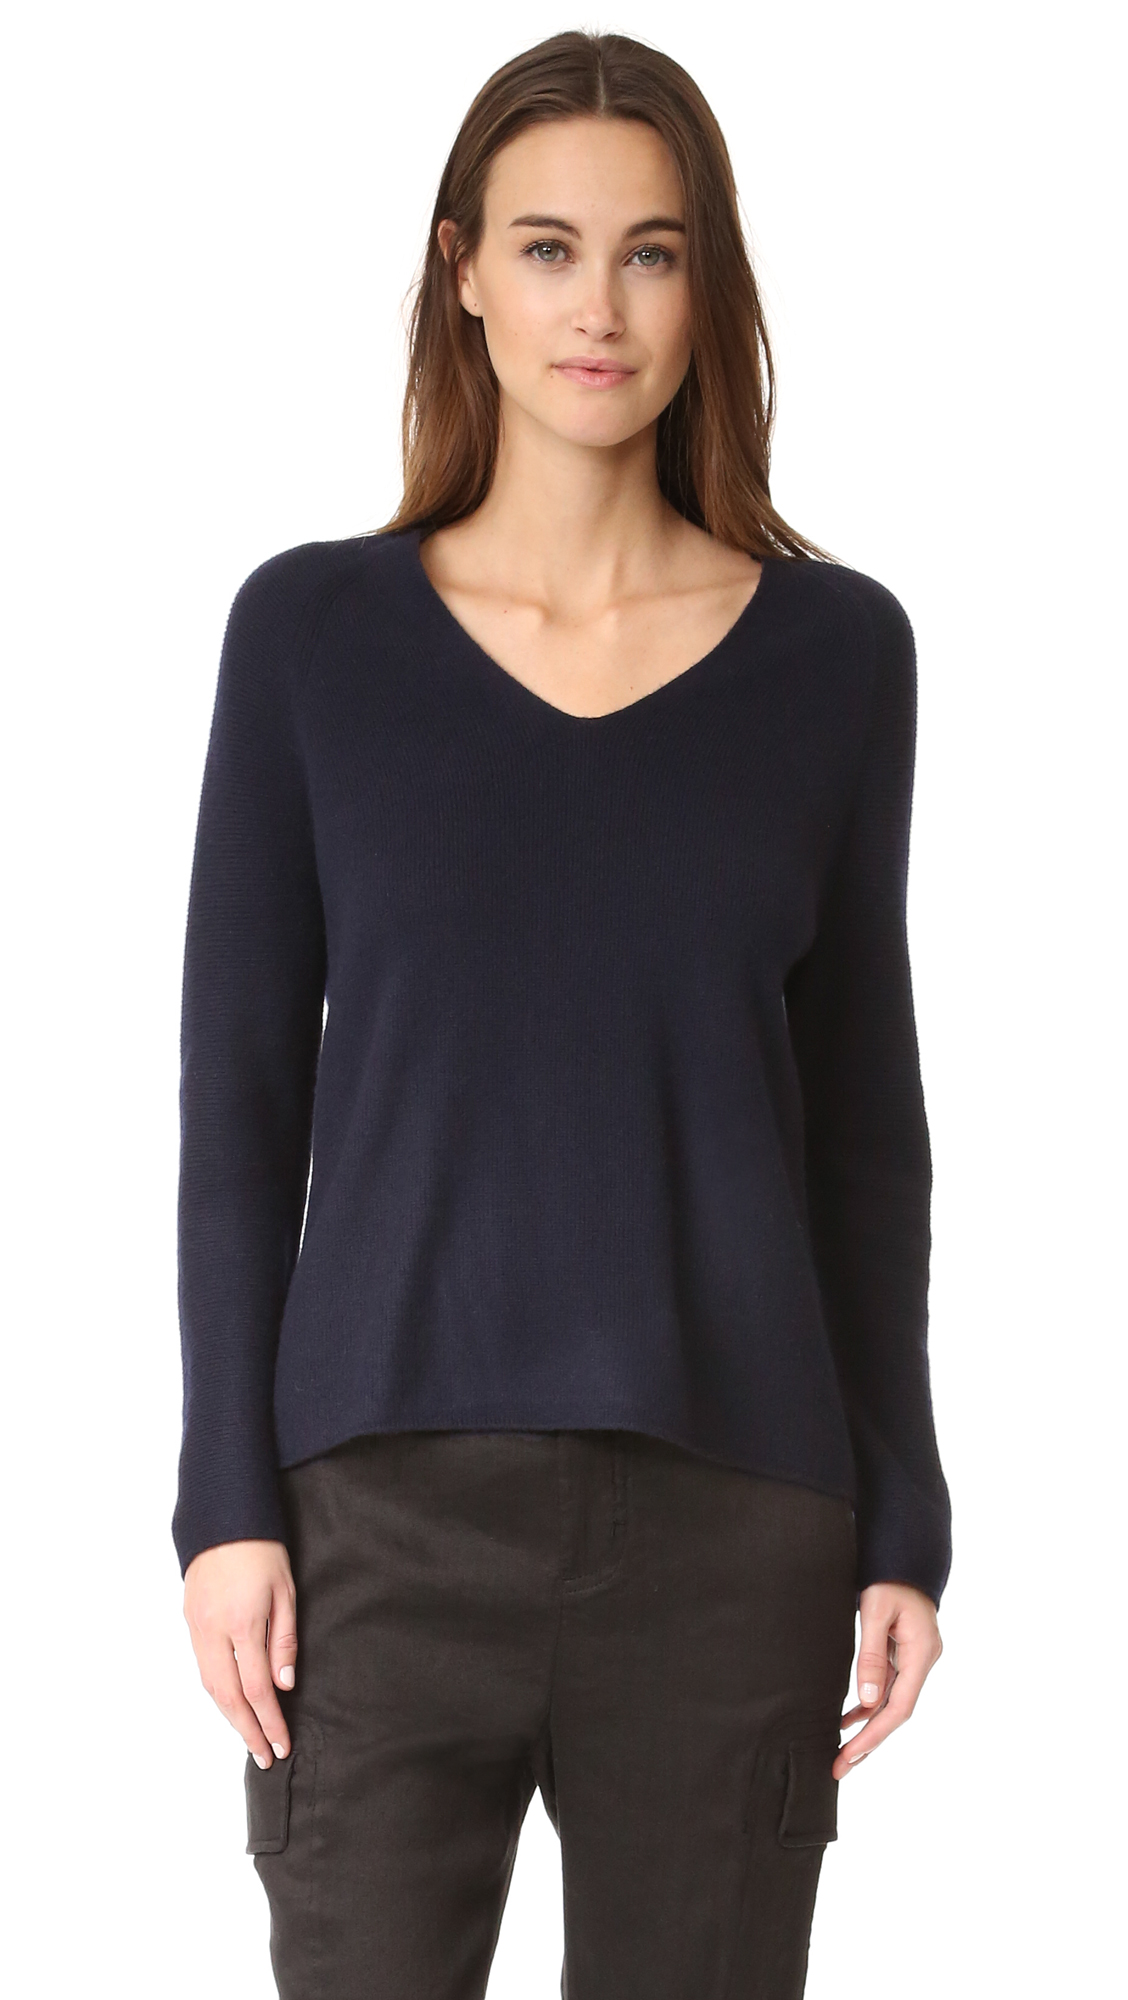 Vince Deep V Cashmere Sweater - Coastal at Shopbop